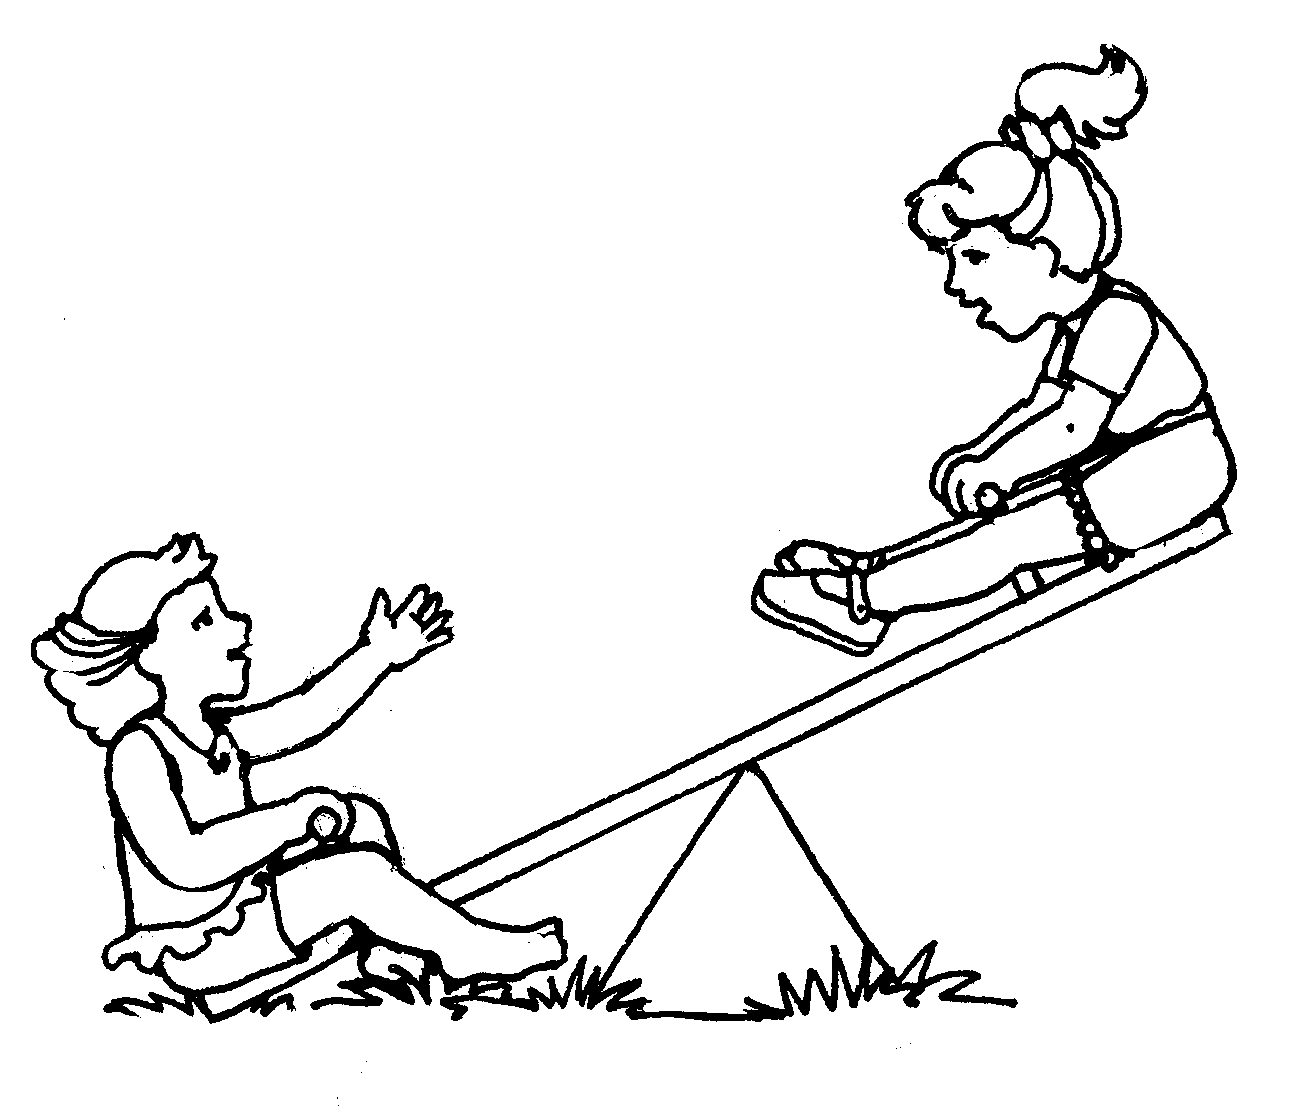 Seesaw Drawing At Getdrawings